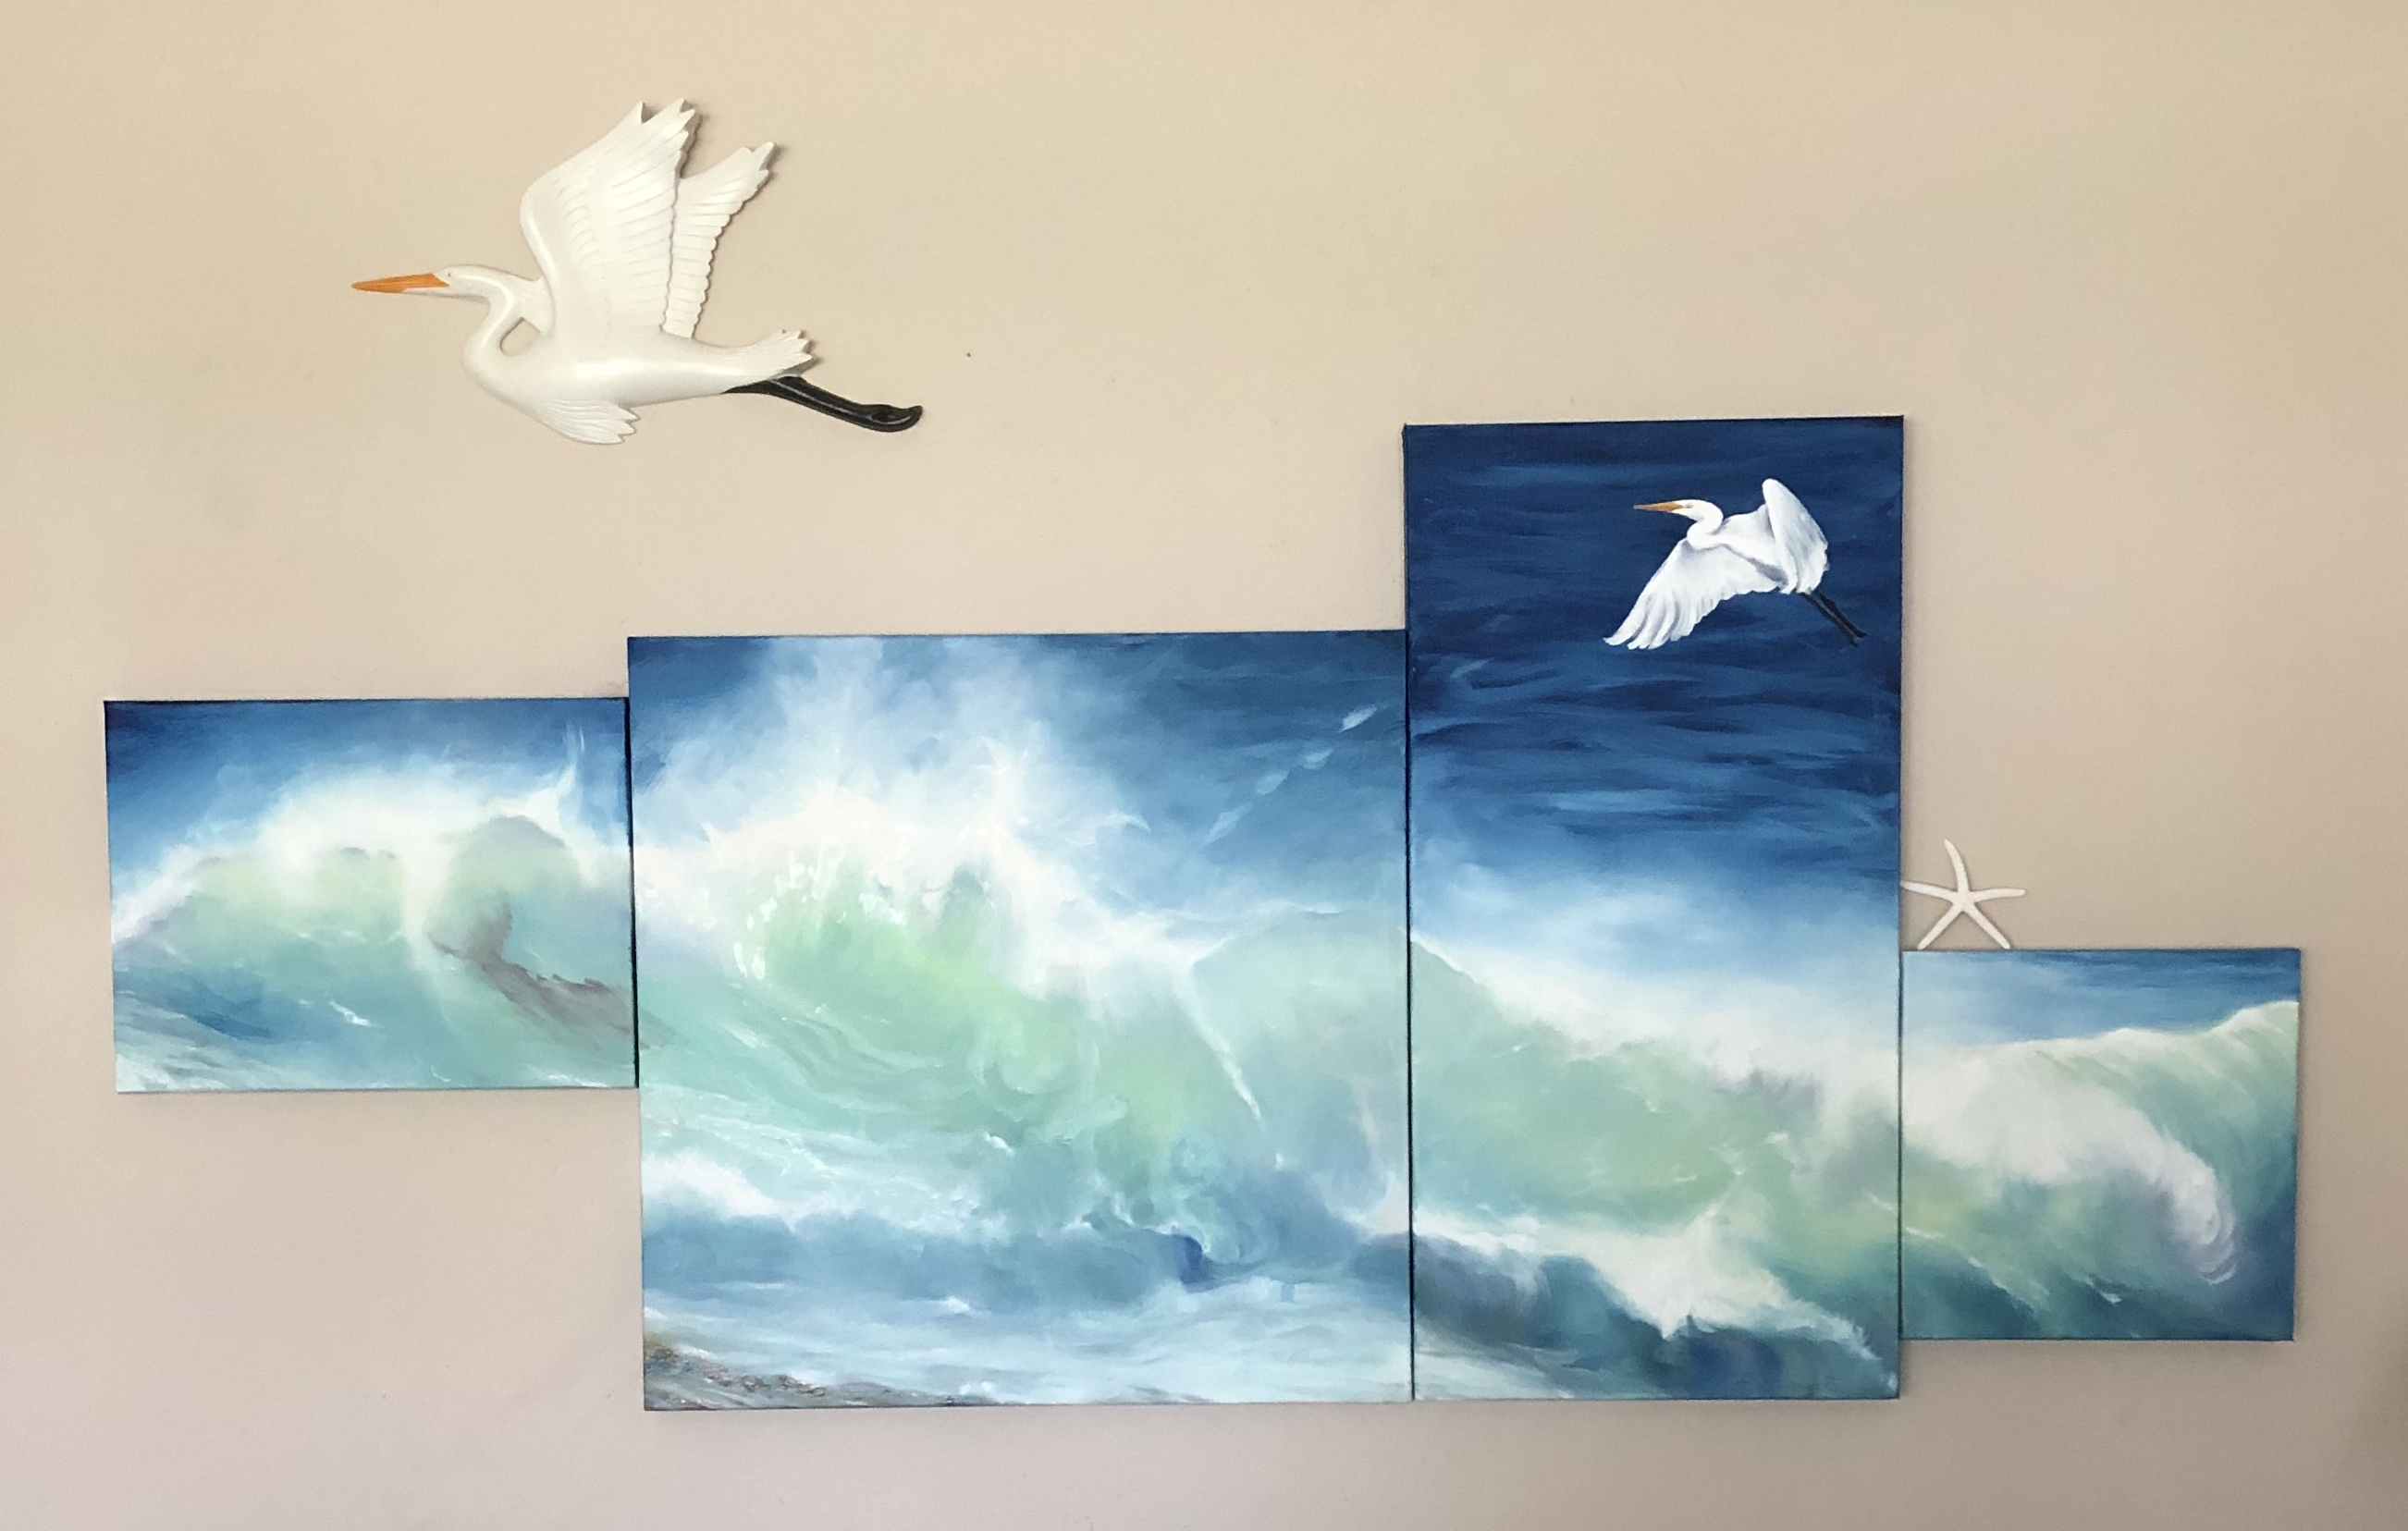 1000 Voices 8 - 30 in x 67 in, Oil on 4 canvases with composite of Great Egret by Lazanna Paskalidis $4500